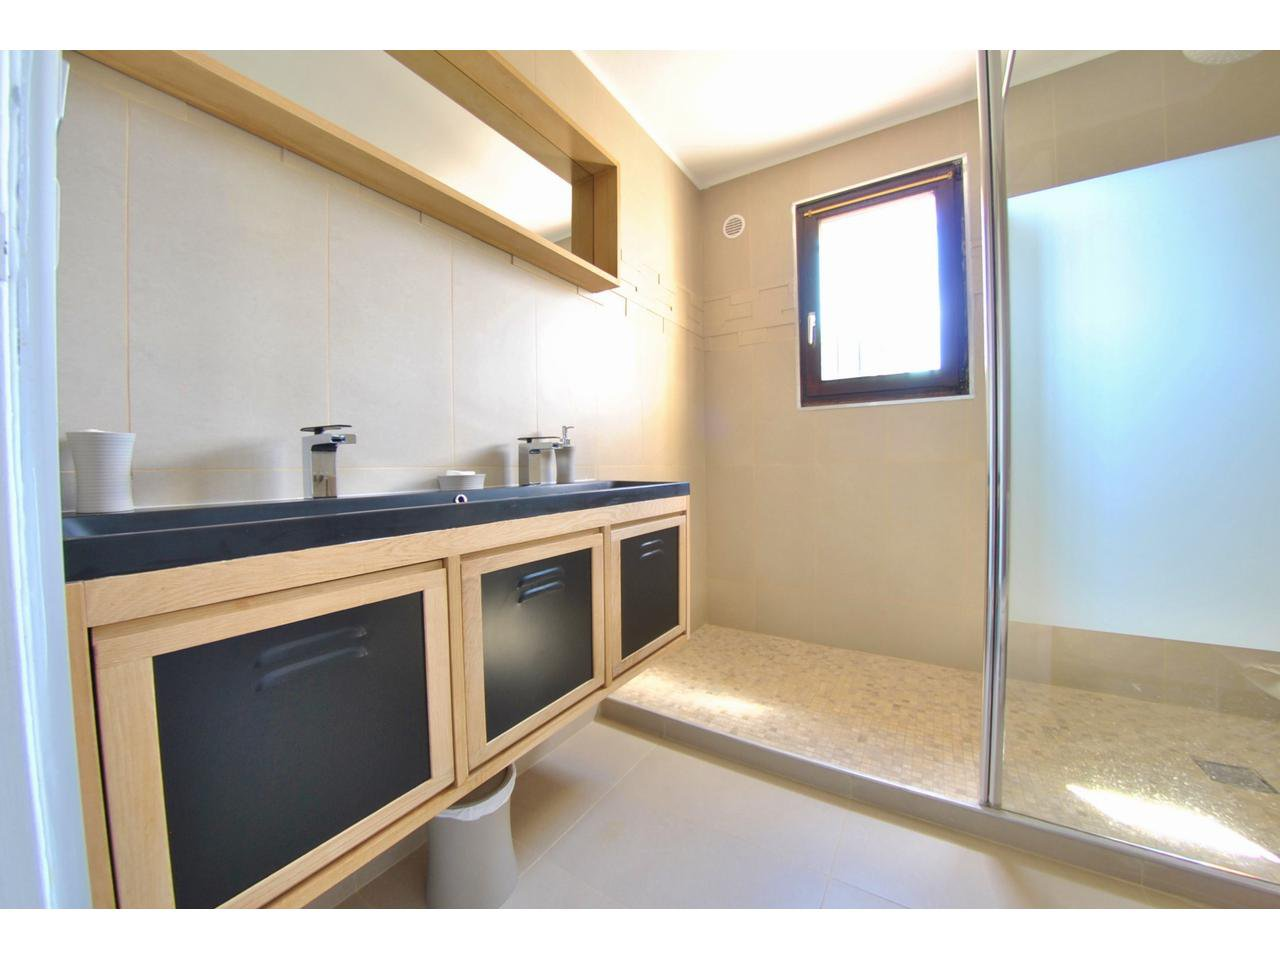 SDD chambre 3 - Shower room bedroom 3